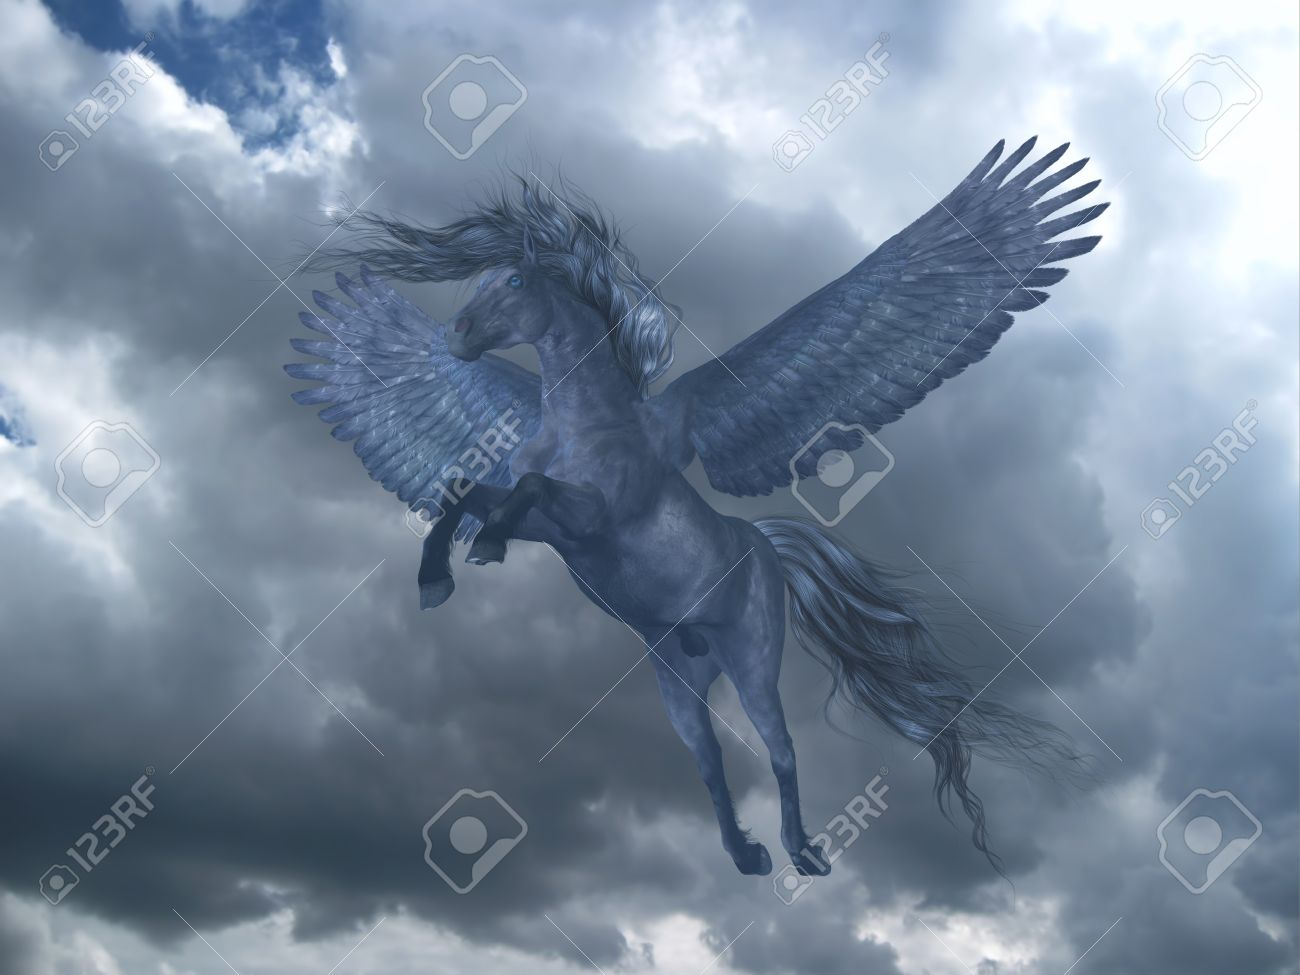 Black Pegasus In Blue Sky A Black Pegasus Horse Rises On Powerful Stock Photo Picture And Royalty Free Image Image 65114131